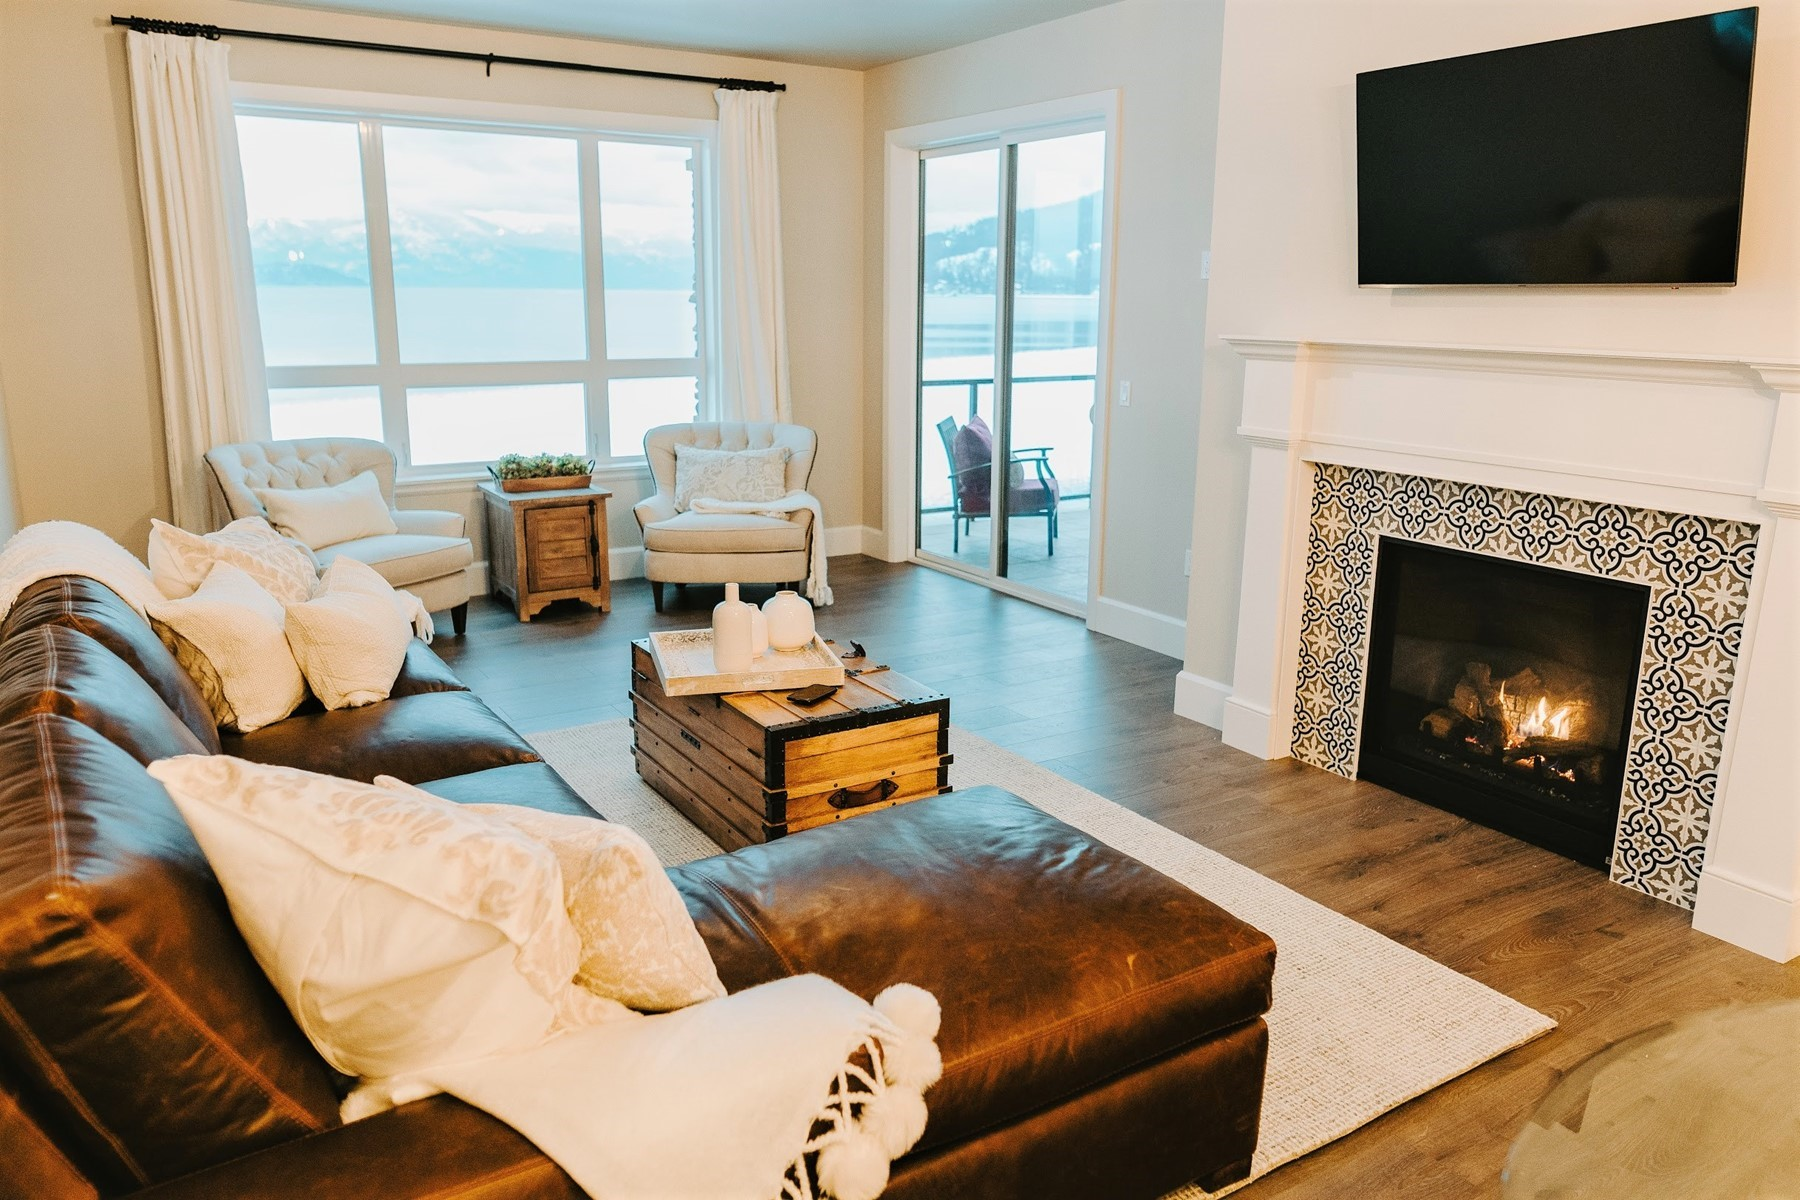 Single Family Homes for Sale at Renovated 1st Floor Residence at Seasons 702 Sandpoint Avenue #7110 Sandpoint, Idaho 83864 United States